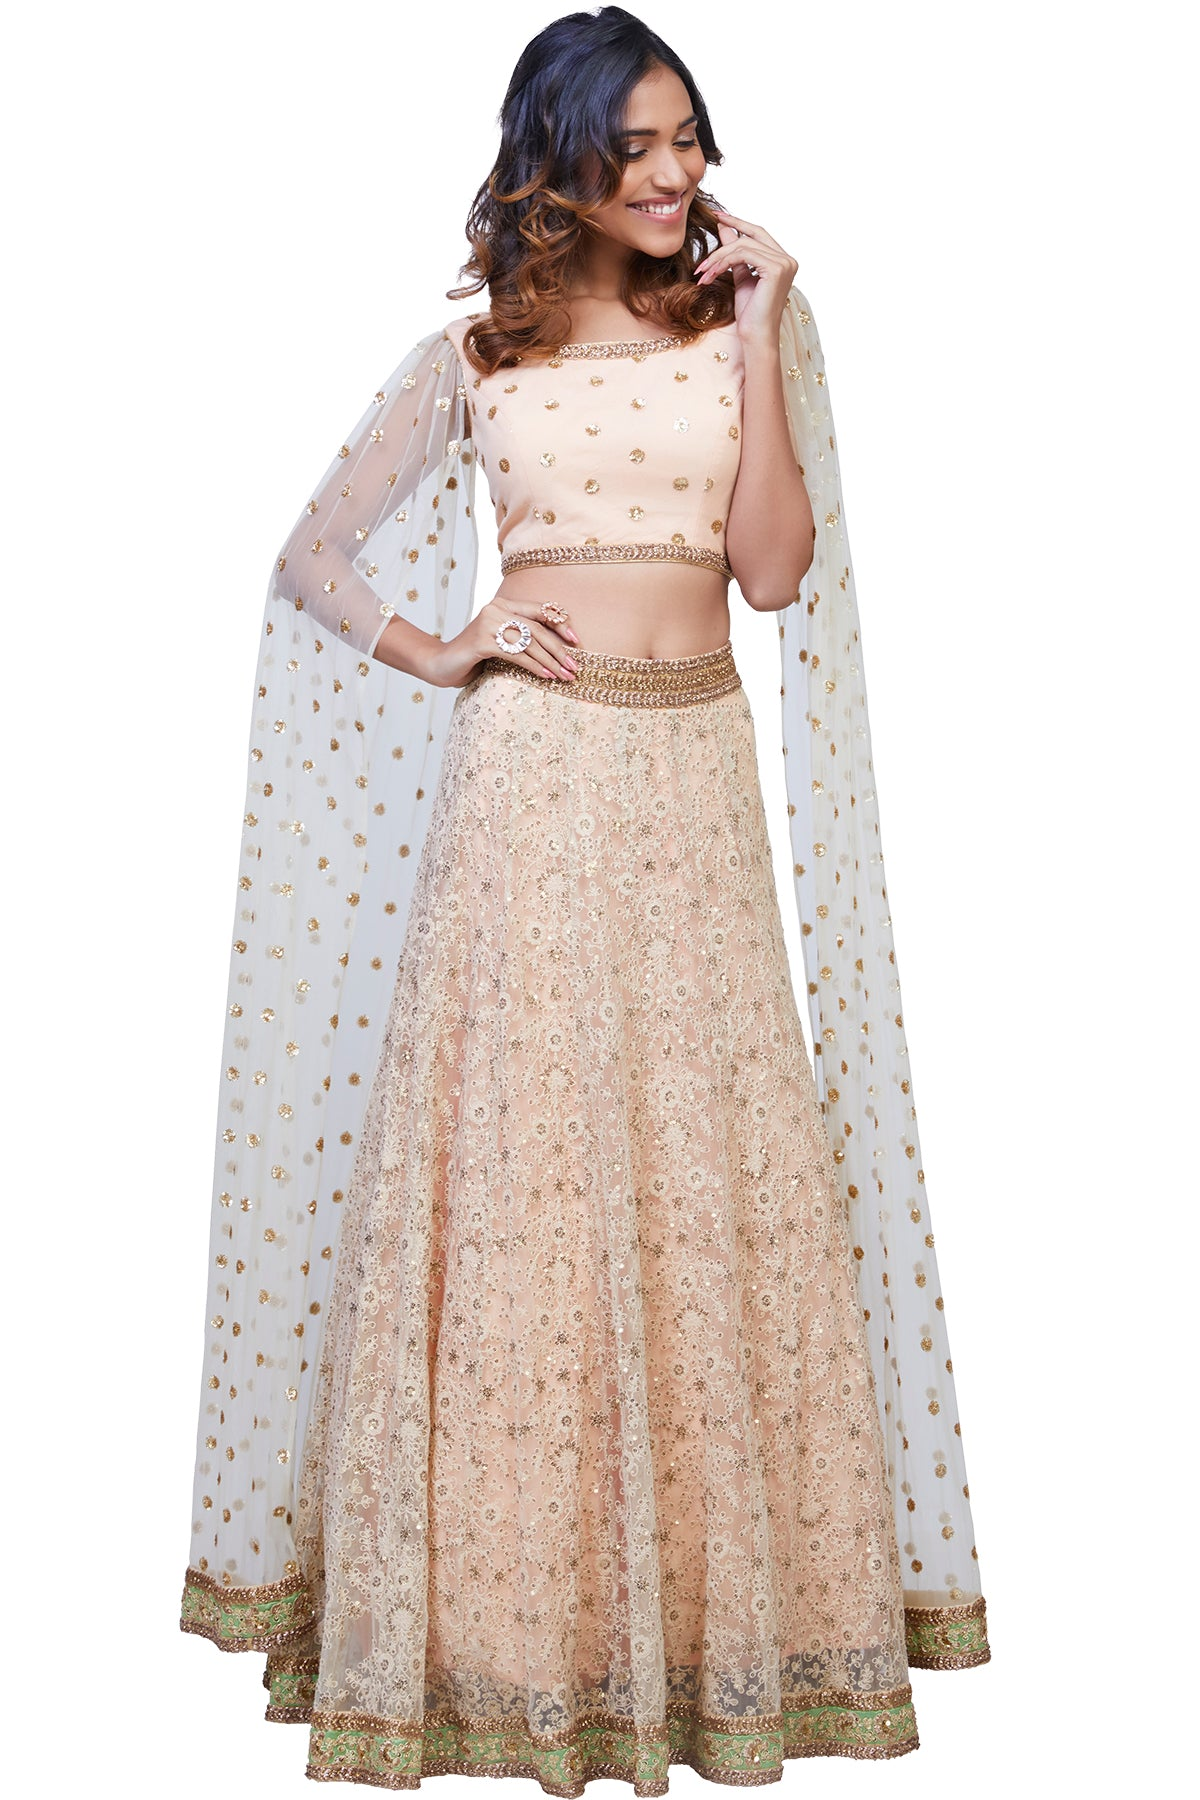 Flutter with finesse in this peach and white net lehenga with thread and sequins embroidery paired with a floor-length cape sleeves blouse.